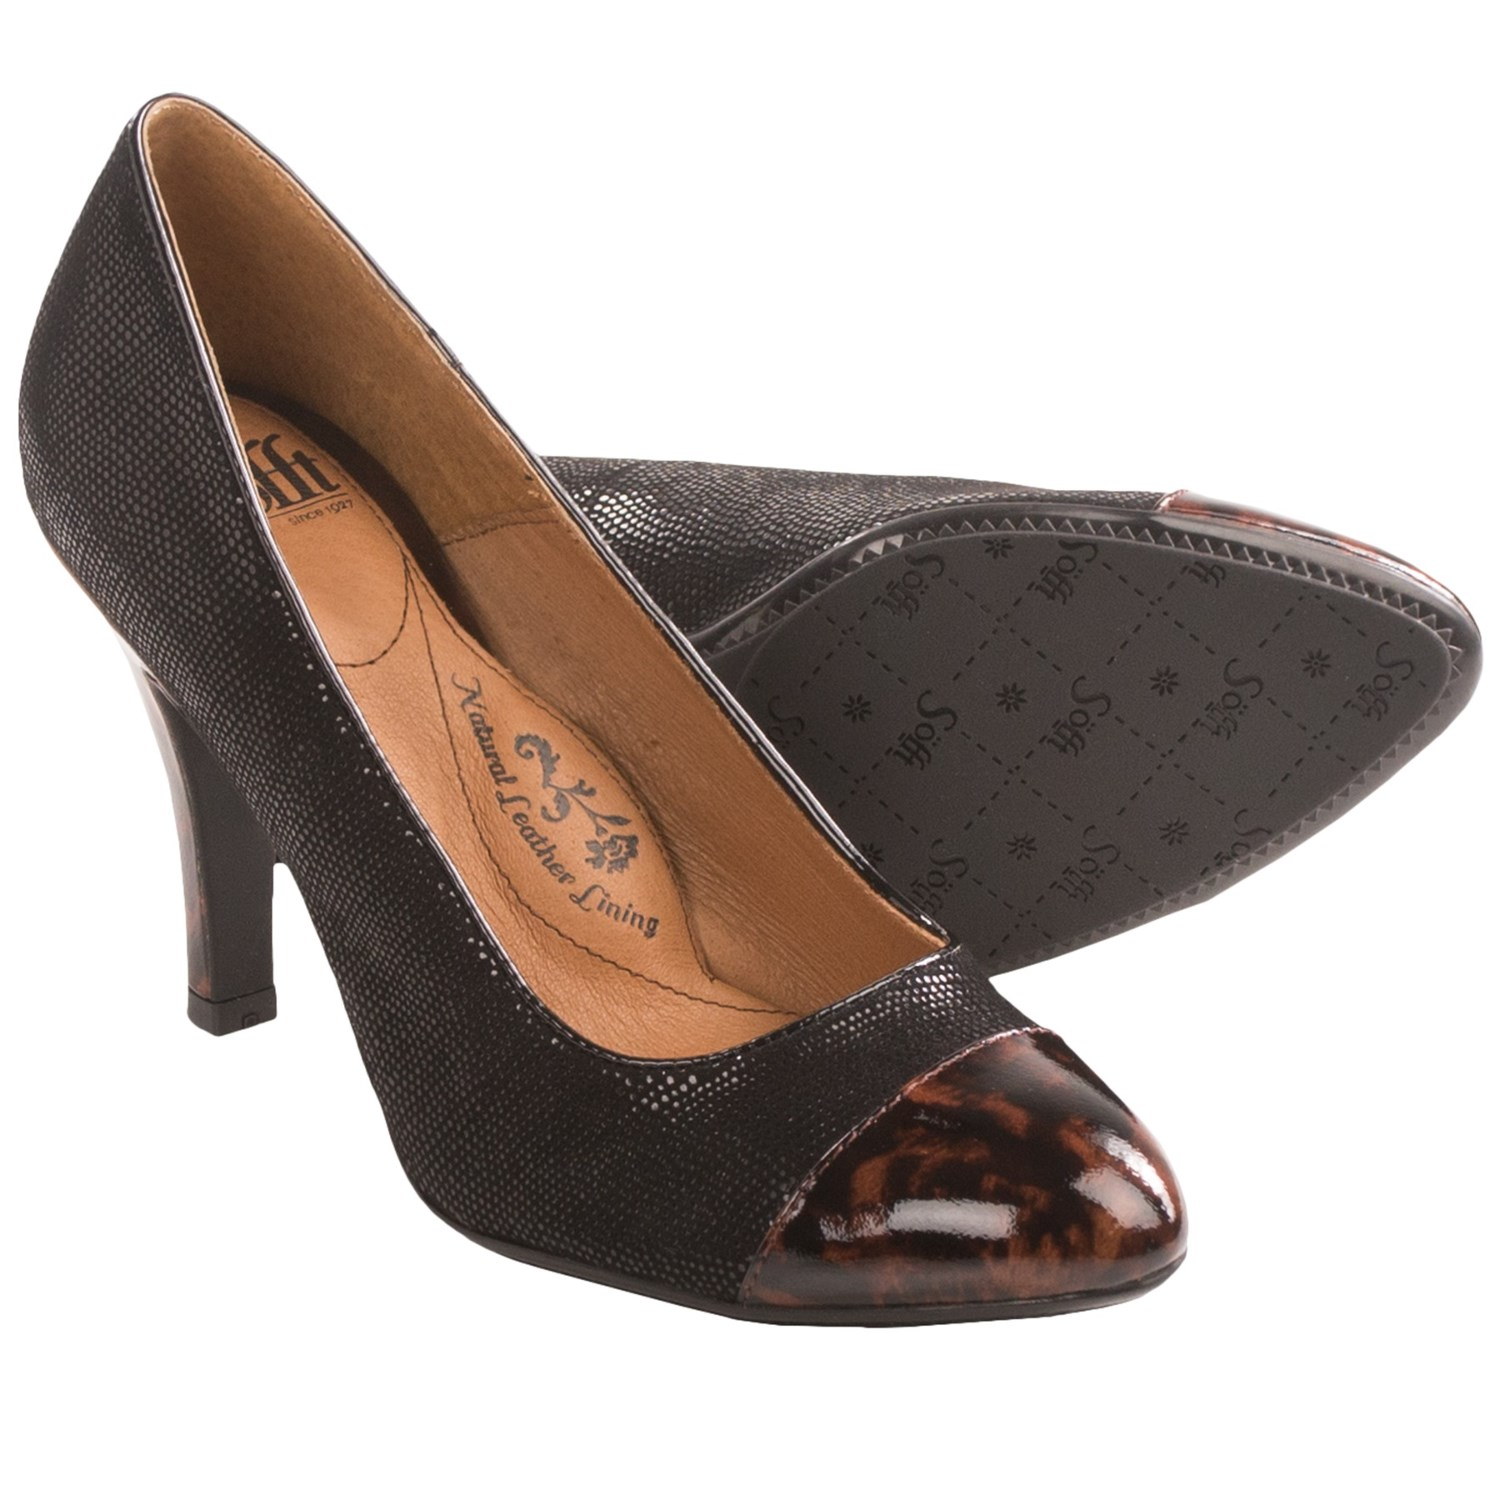 Shop for Sale & Clearance Shoes for Women, Men & Kids | Dillard's at dendeseabli.cf Visit dendeseabli.cf to find clothing, accessories, shoes, cosmetics & more. The Style of Your Life.